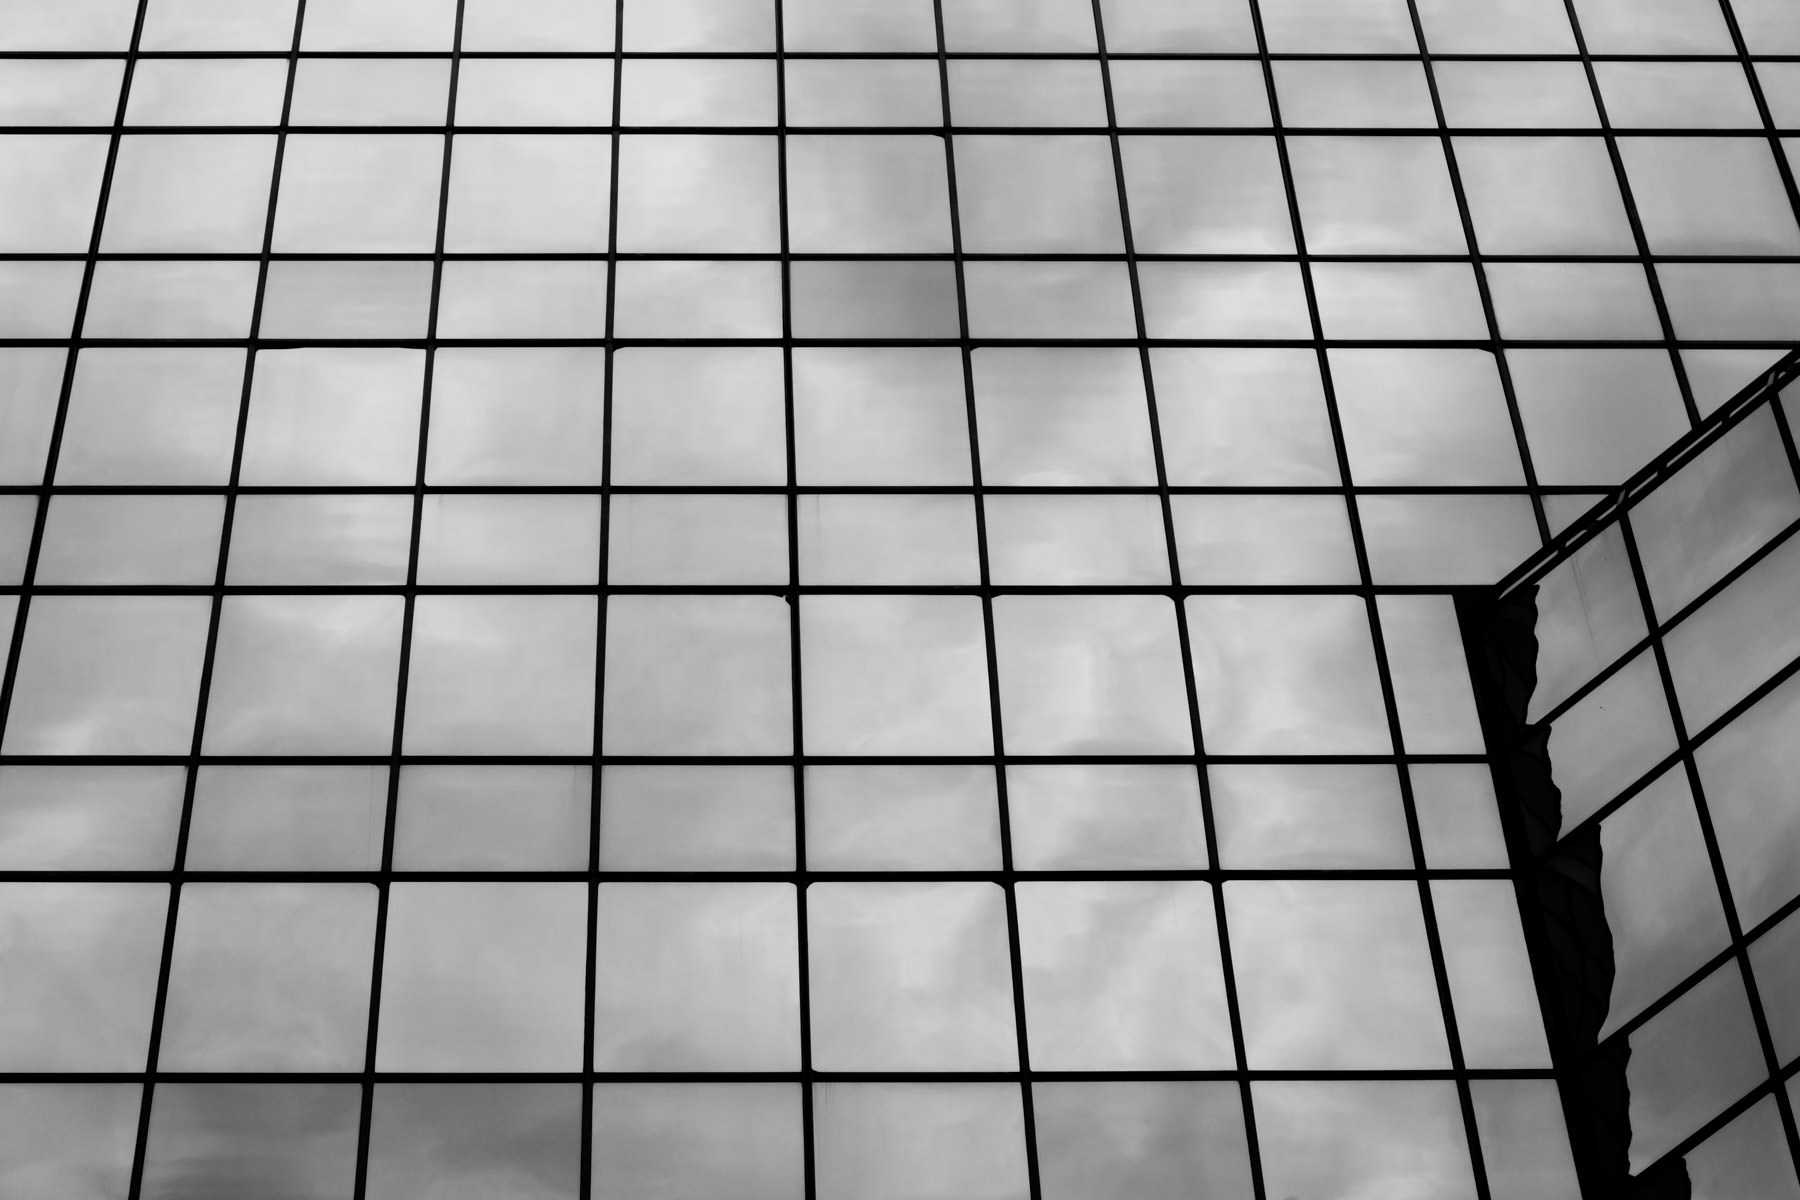 Architectural detail of windows on a skyscraper in Downtown Fort Worth, Texas.